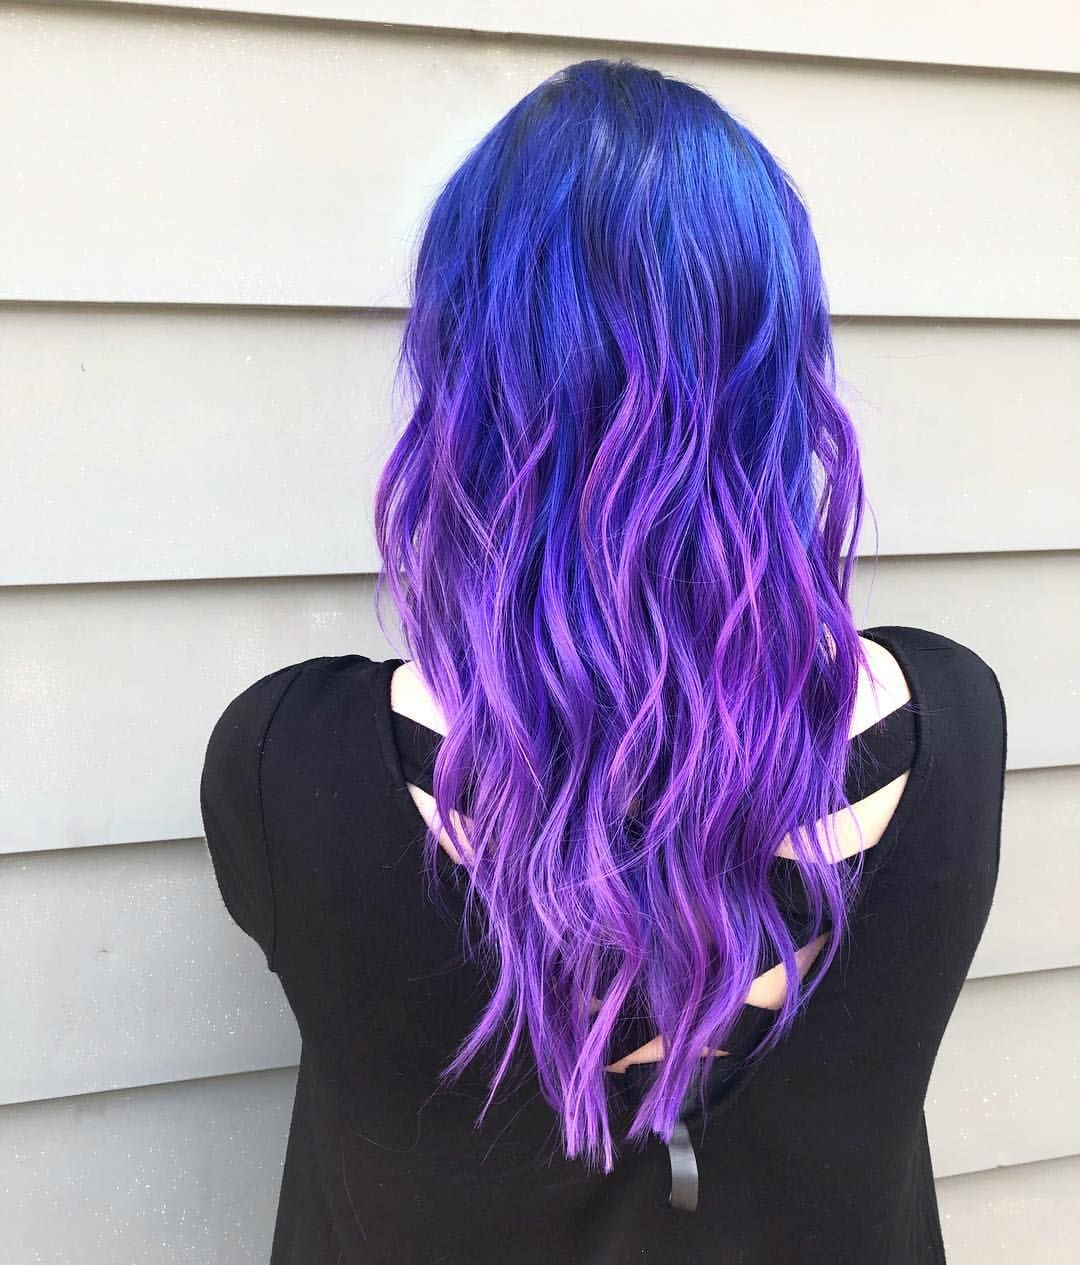 """@veronicaanowak """"Electric blue and purple ⚡️⚡️⚡️ styled ..."""